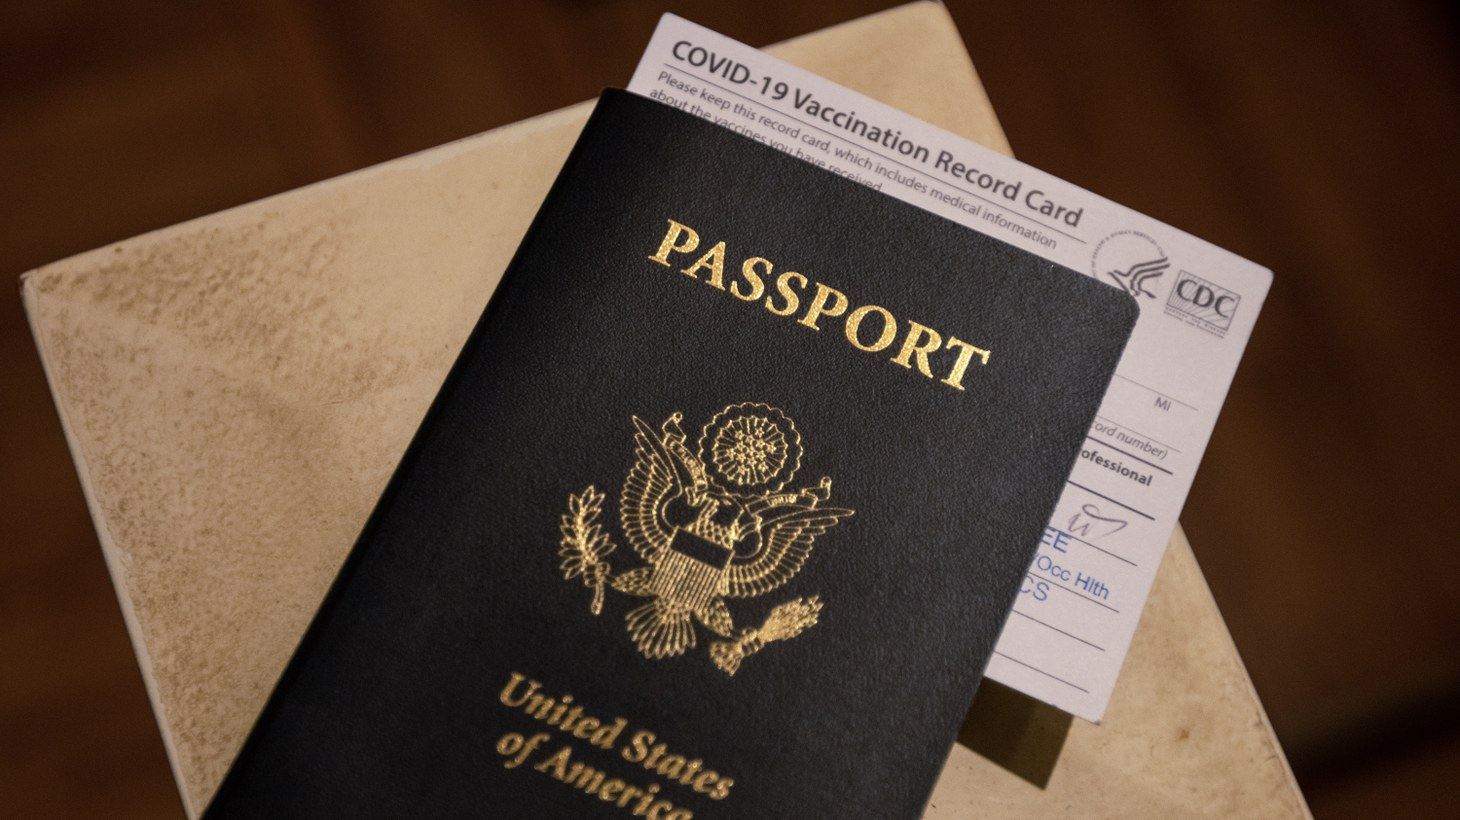 An illustration of a United States Passport with a COVID-19 Vaccination Record Card in a home in San Diego, California, March 11, 2021. Some European countries such as Spain, Georgia, Greece, and Denmark will allow international travelers who have received the COVID-19 vaccine.